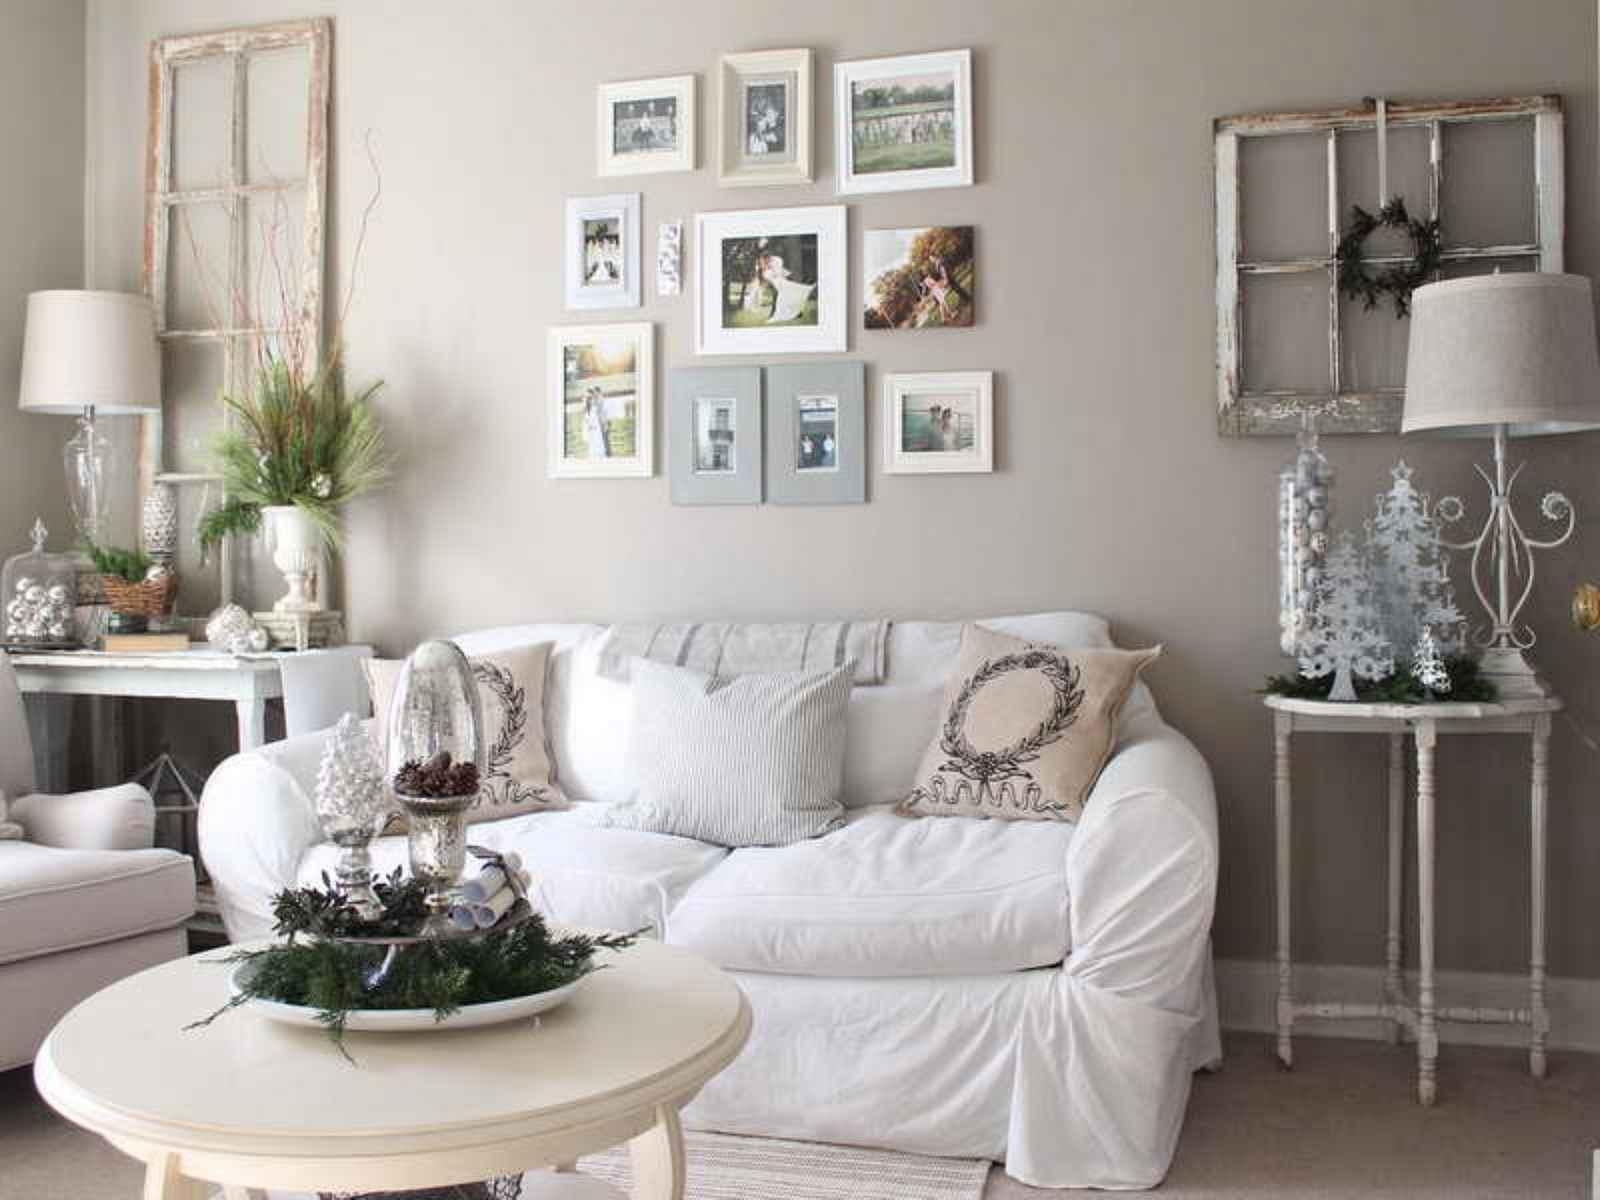 1000 Ideas About Decorating Large Walls On Pinterest Blank Wall Within Wall Art For Large Walls (Image 2 of 20)